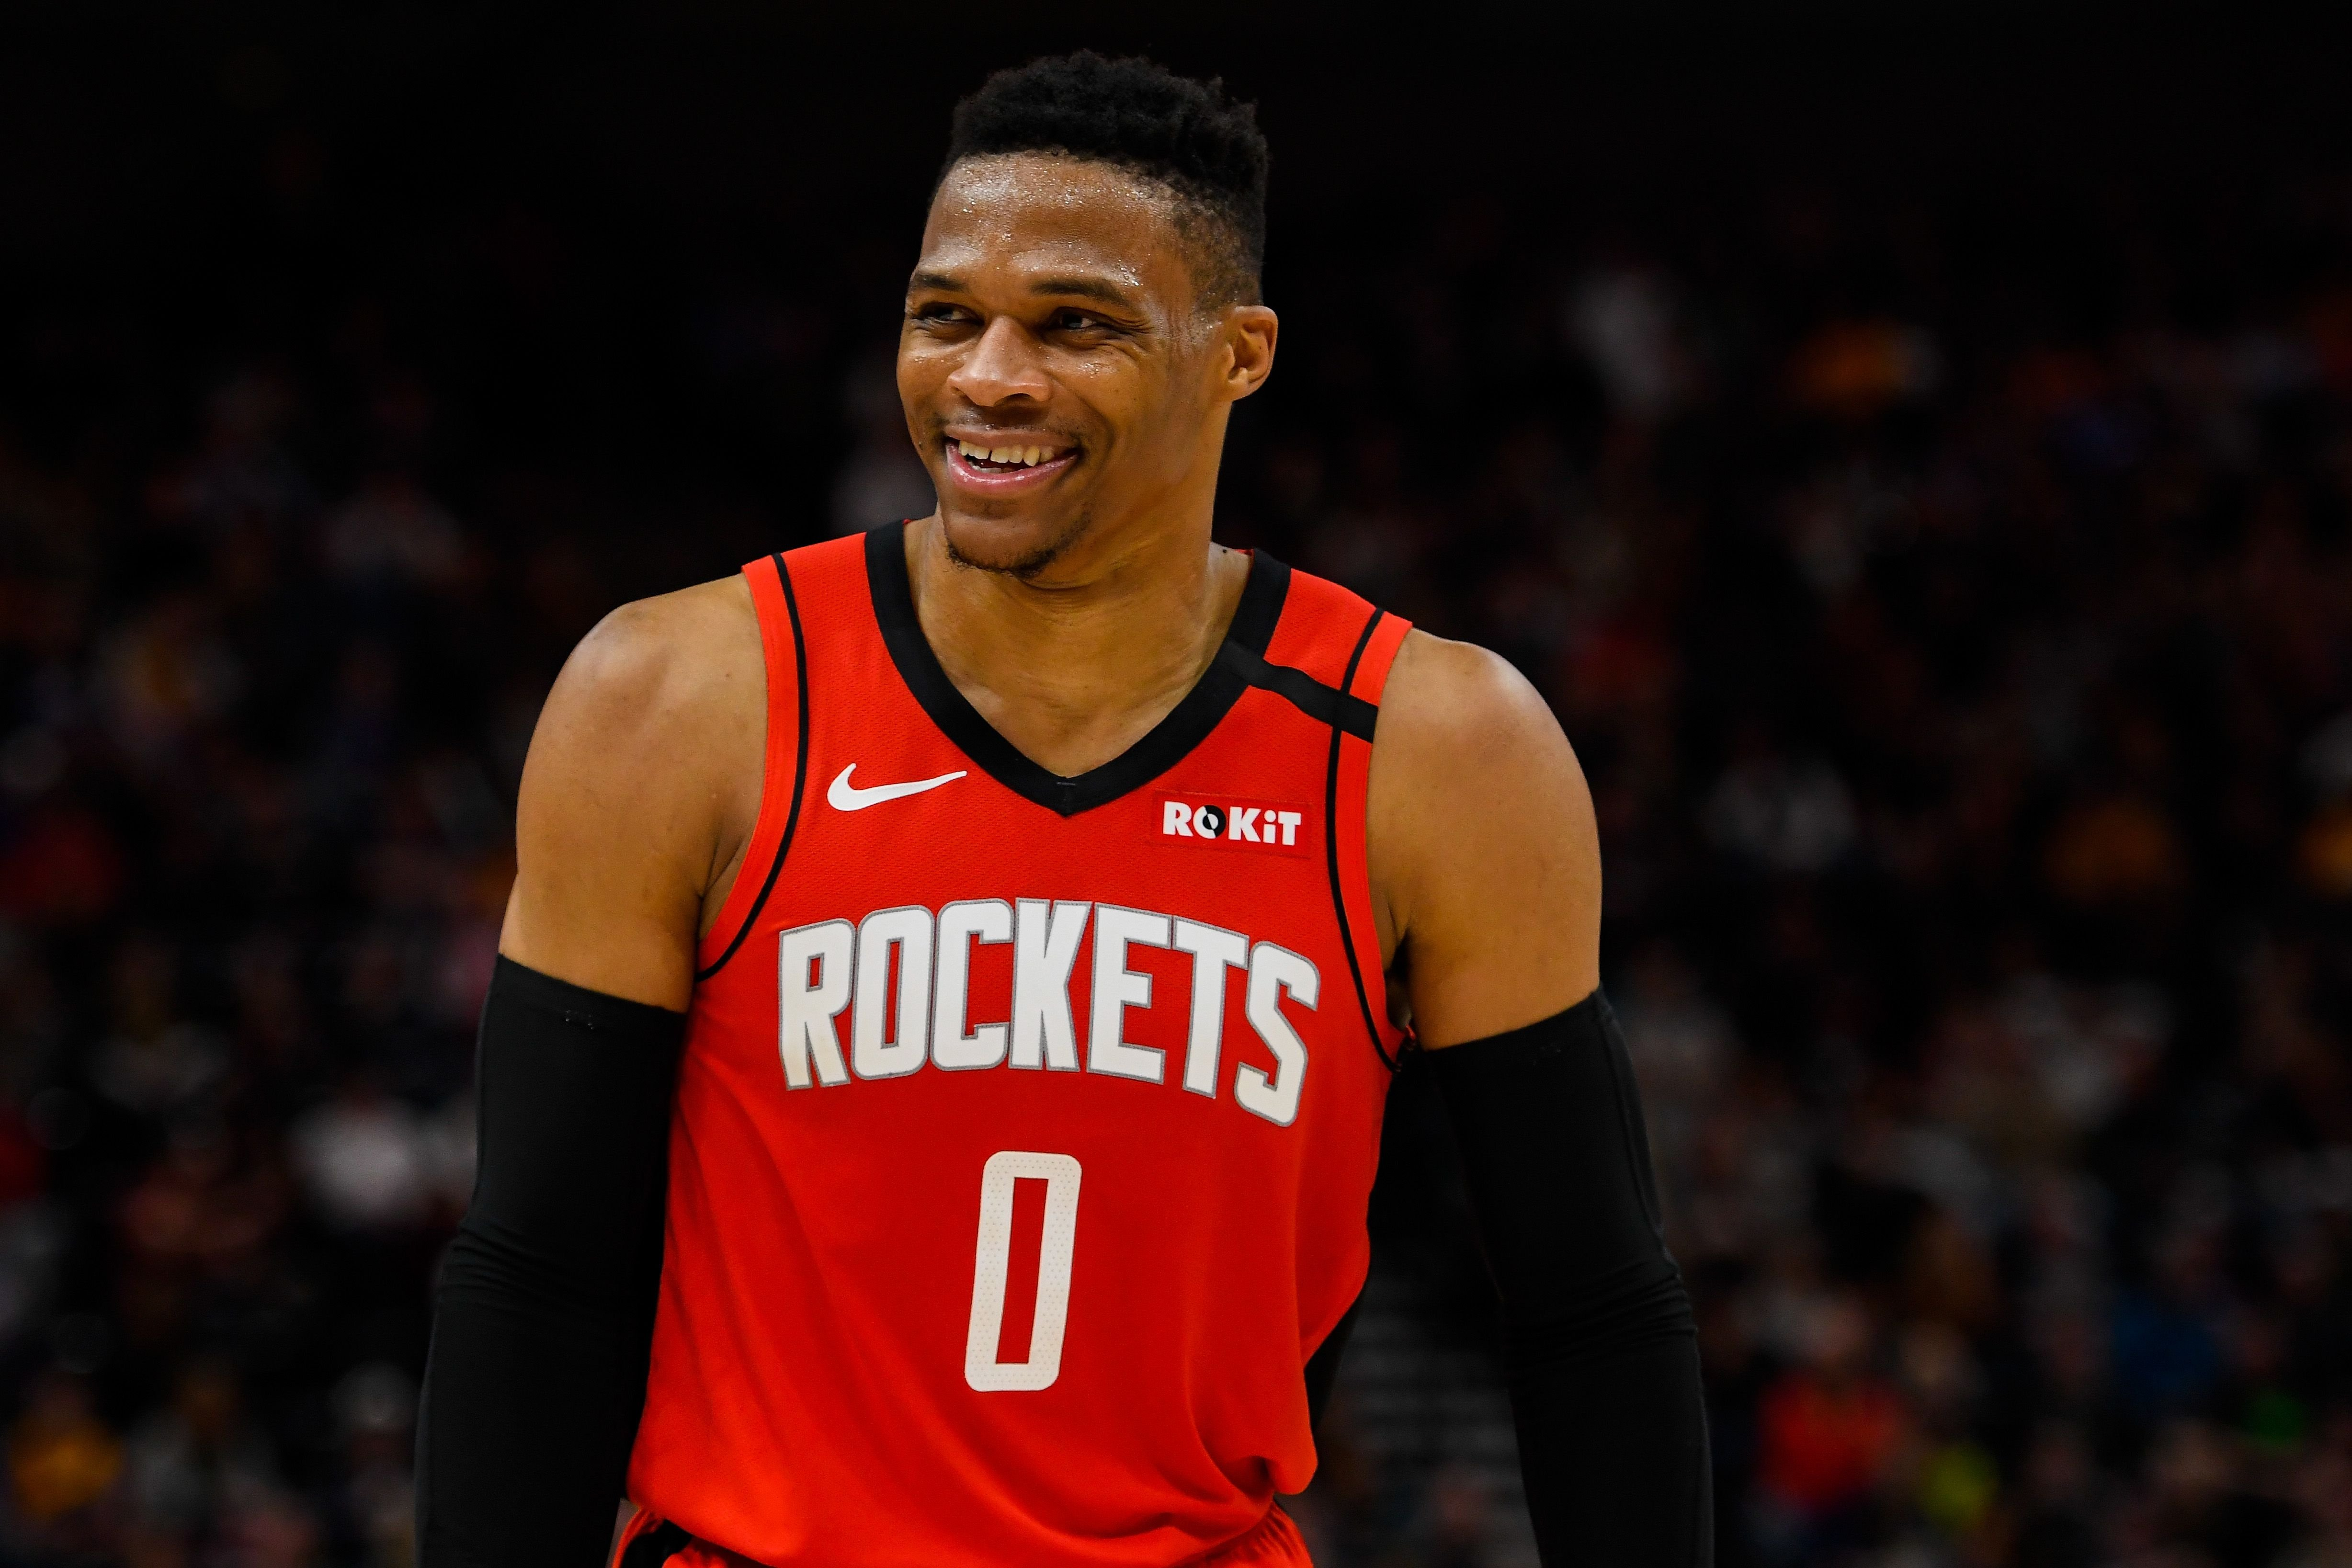 Russell Westbrook #0 of the Houston Rockets looks on during a game against the Utah Jazz at Vivint Smart Home Arena on February 22, 2020 in Salt Lake City, Utah.   Source: Getty Images